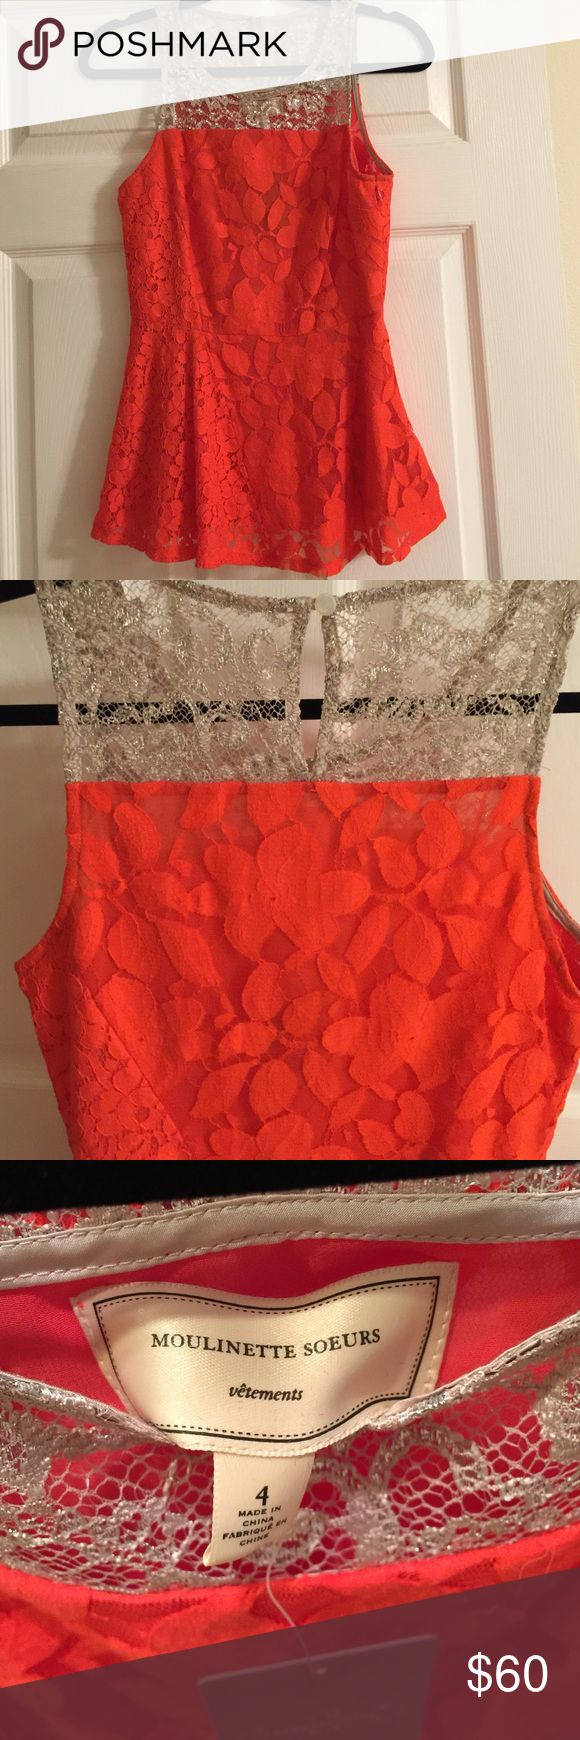 Anthropologie Moulinette Soeurs Red Peplum Top 4 Adorable red lace peplum top with gold lace neckline detail by Moulinette Soeurs purchased from Anthropologie. NWT size 4. Looks cute with just about anything! Anthropologie Tops Tank Tops